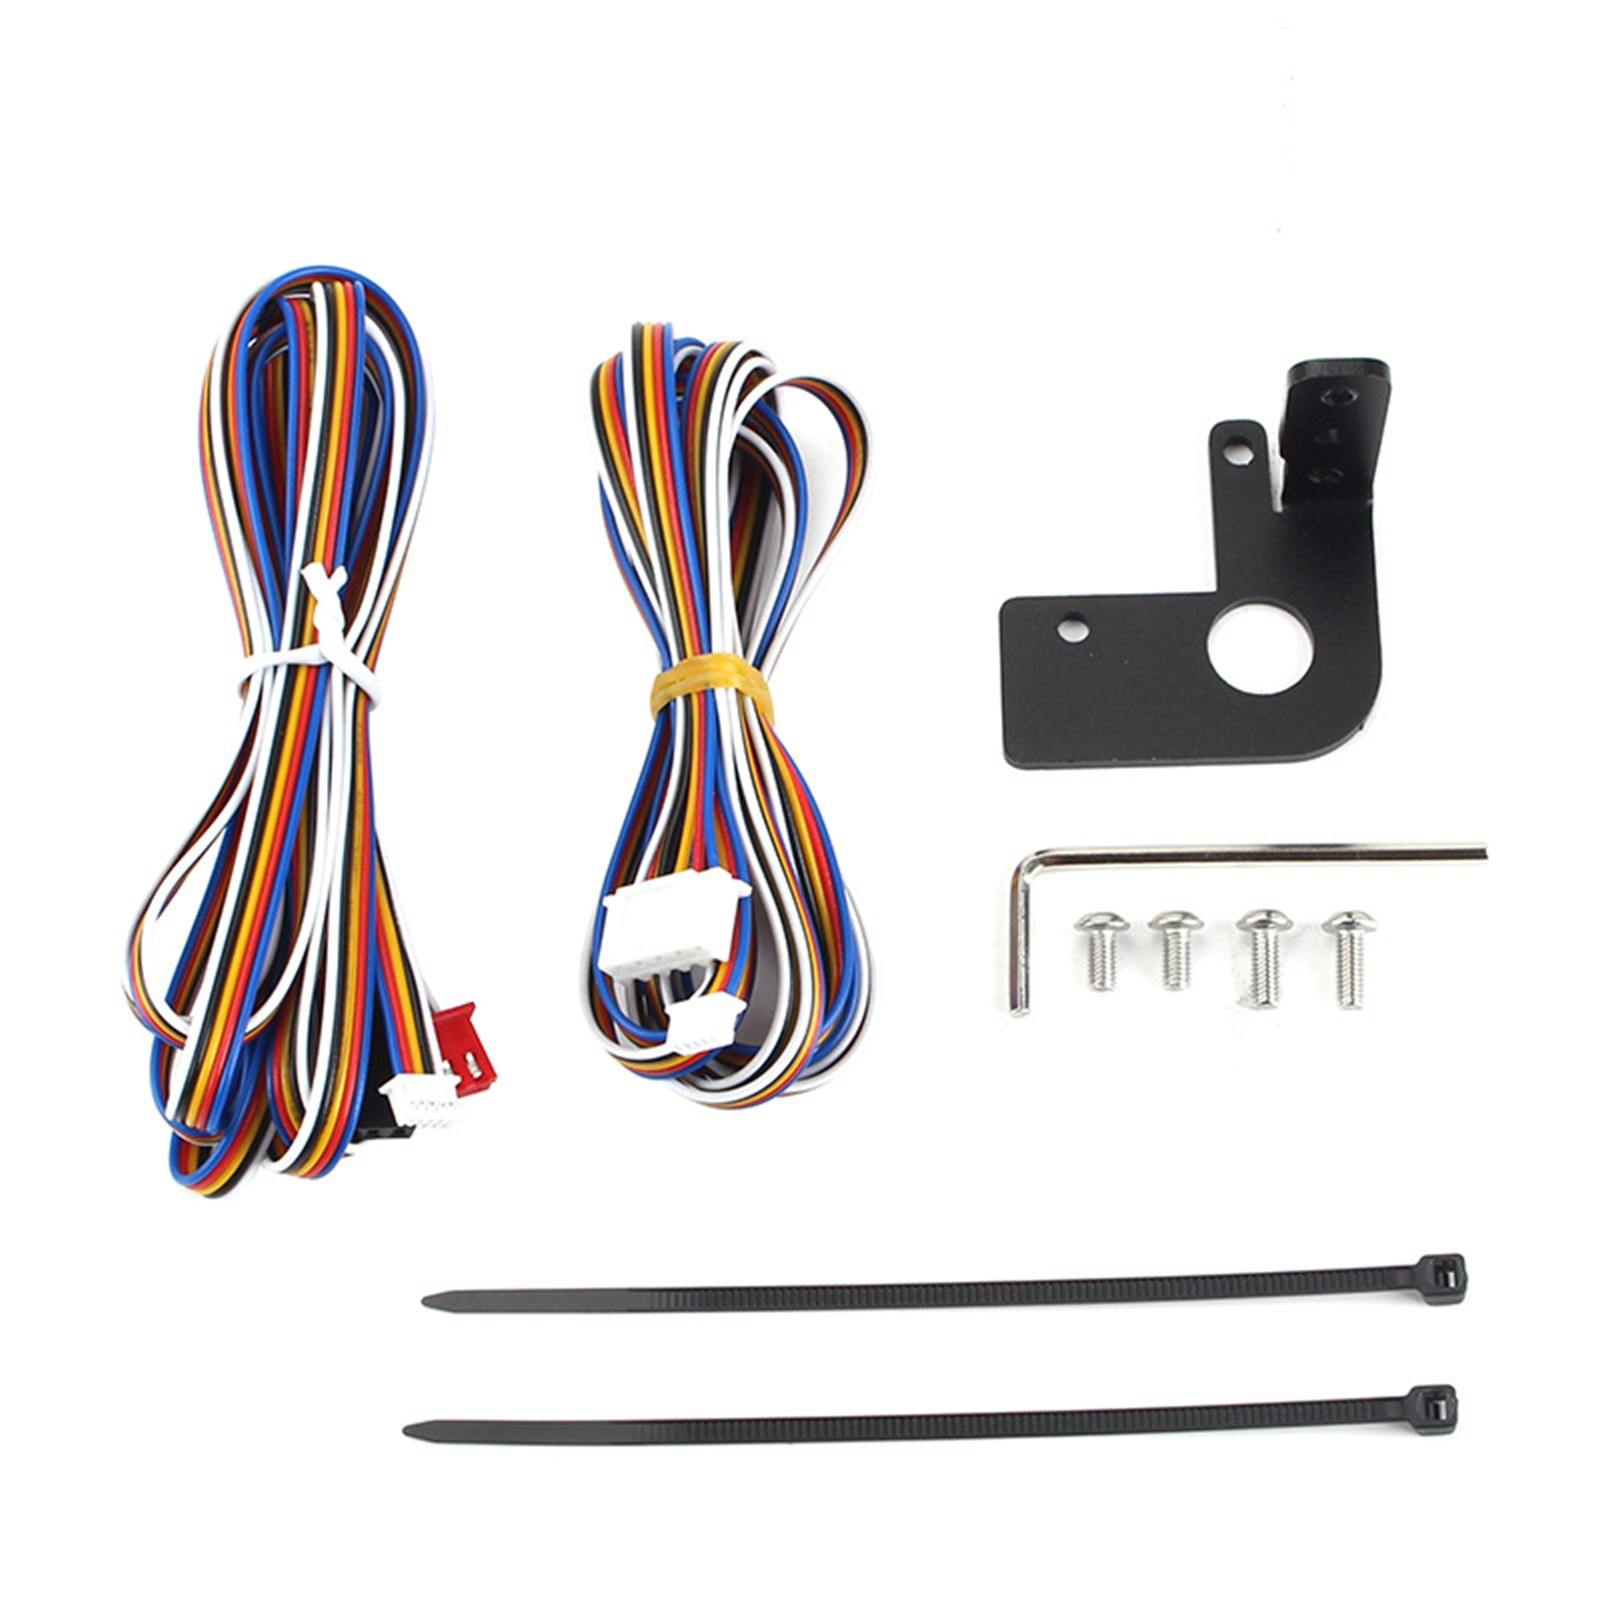 Printer Connection Kit 3D Printer Parts BLTOUCH Extension Cable +Mount For CR 10 Creality3D Printer And Normal Controller Board 4 color indoor piezo photo printer lecai skycolor printhead board for encad novajet 750 760 850 printer carriage board